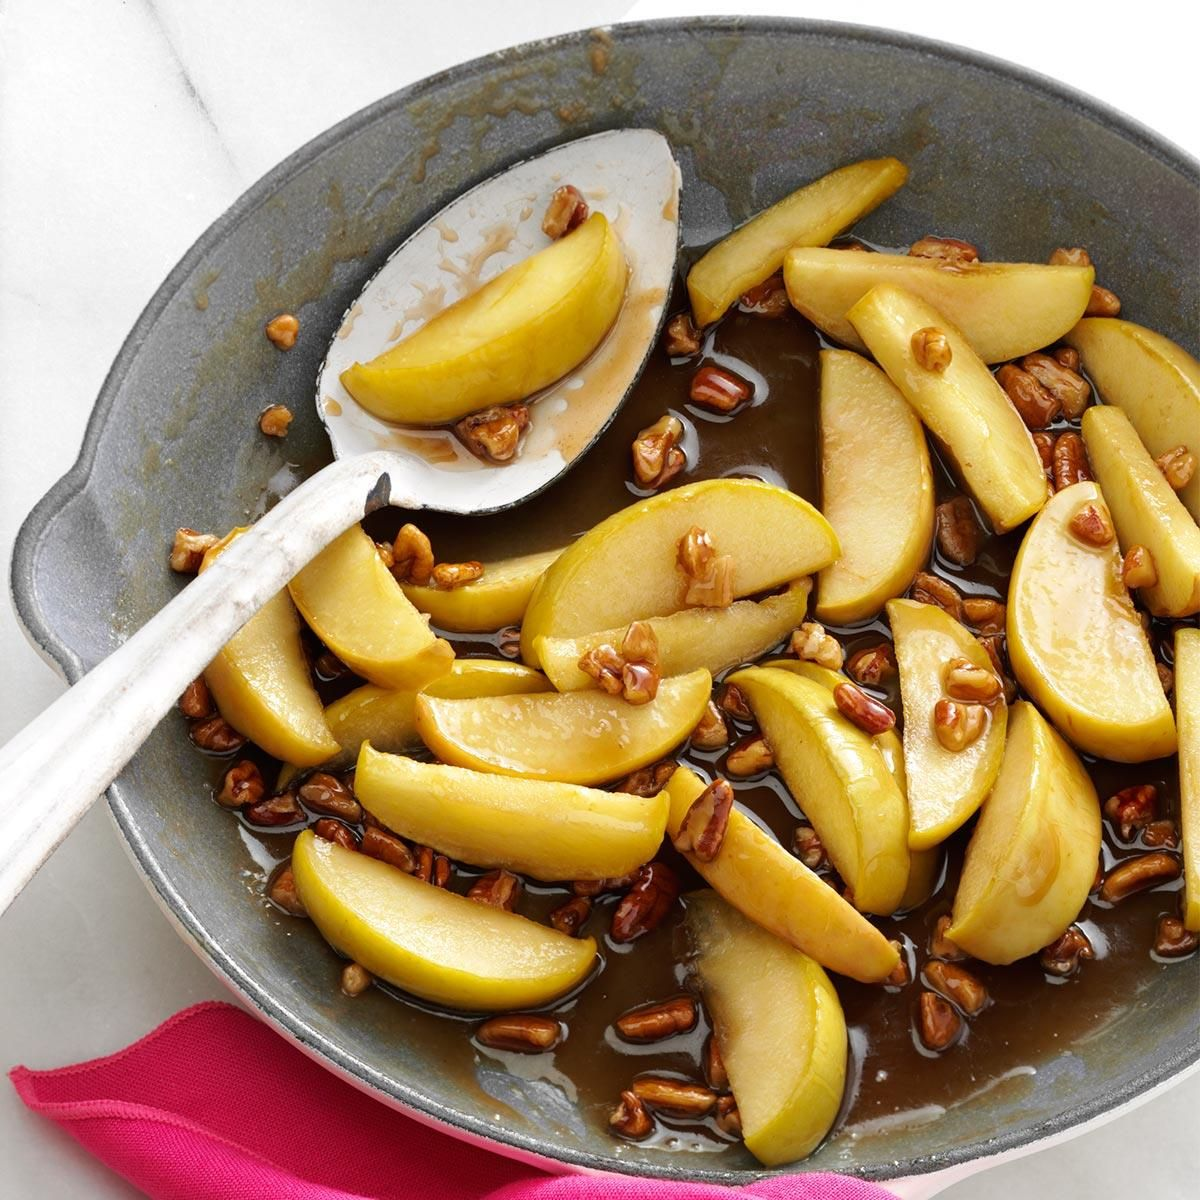 Caramel-Pecan Apple Slices Recipe -When looking for a fast, fun side dish to dress up a pork entree or any festive spread, Carol Gillespie relies on this fuss-free recipe to please family and friends in Chambersburg, Pennsylvania. TASTY TIP. Try spooning over a scoop of vanilla ice cream for a dessert treat.